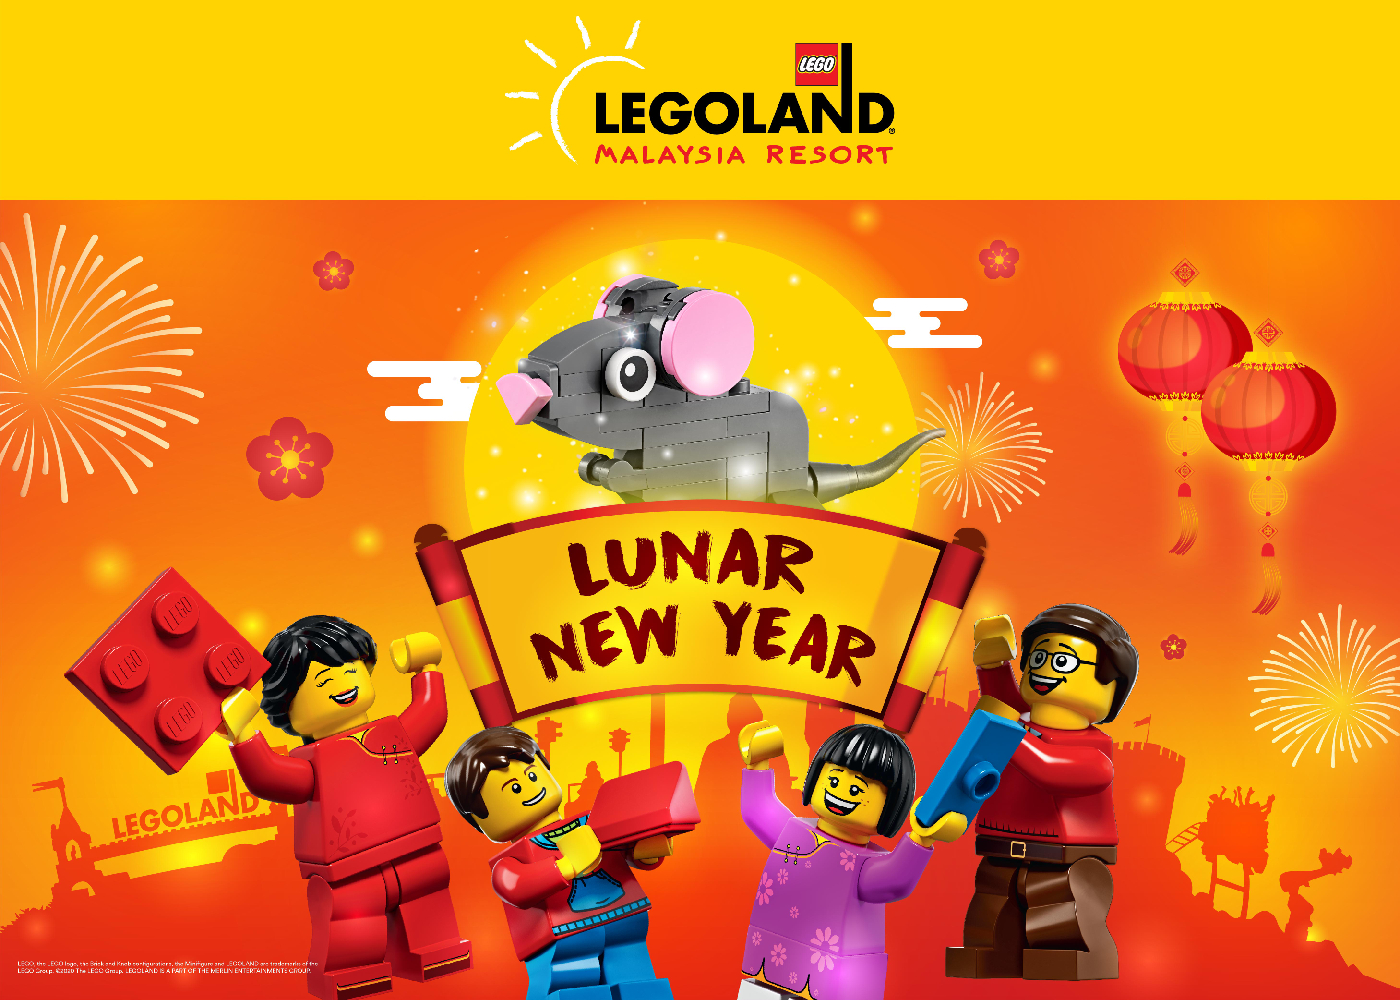 Lunar New Year at Legoland Malaysia Resort